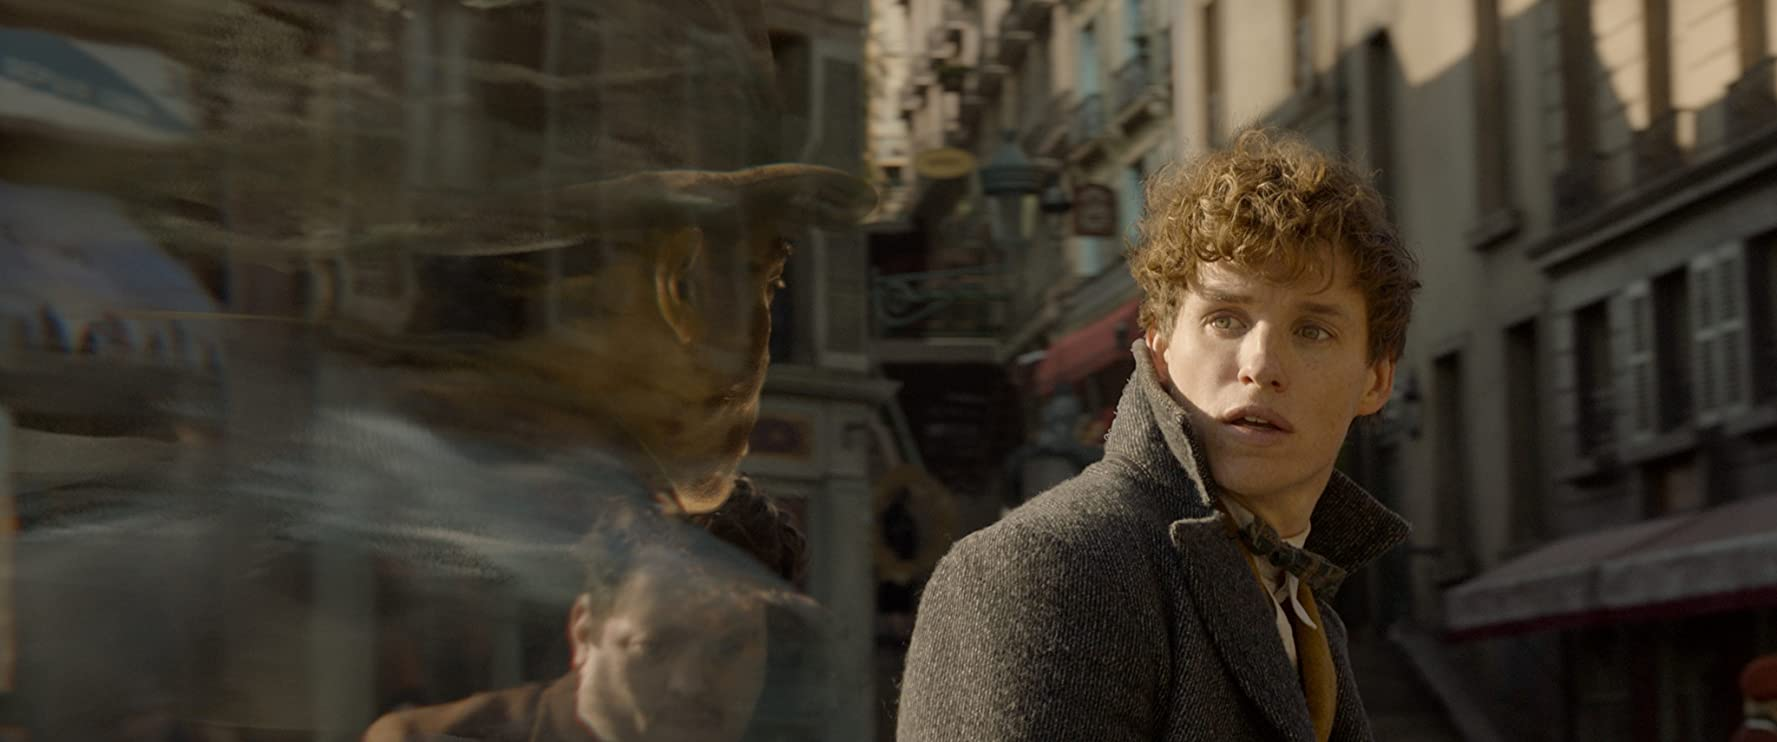 Eddie Redmayne in Fantastic Beasts: The Crimes of Grindelwald (2018)